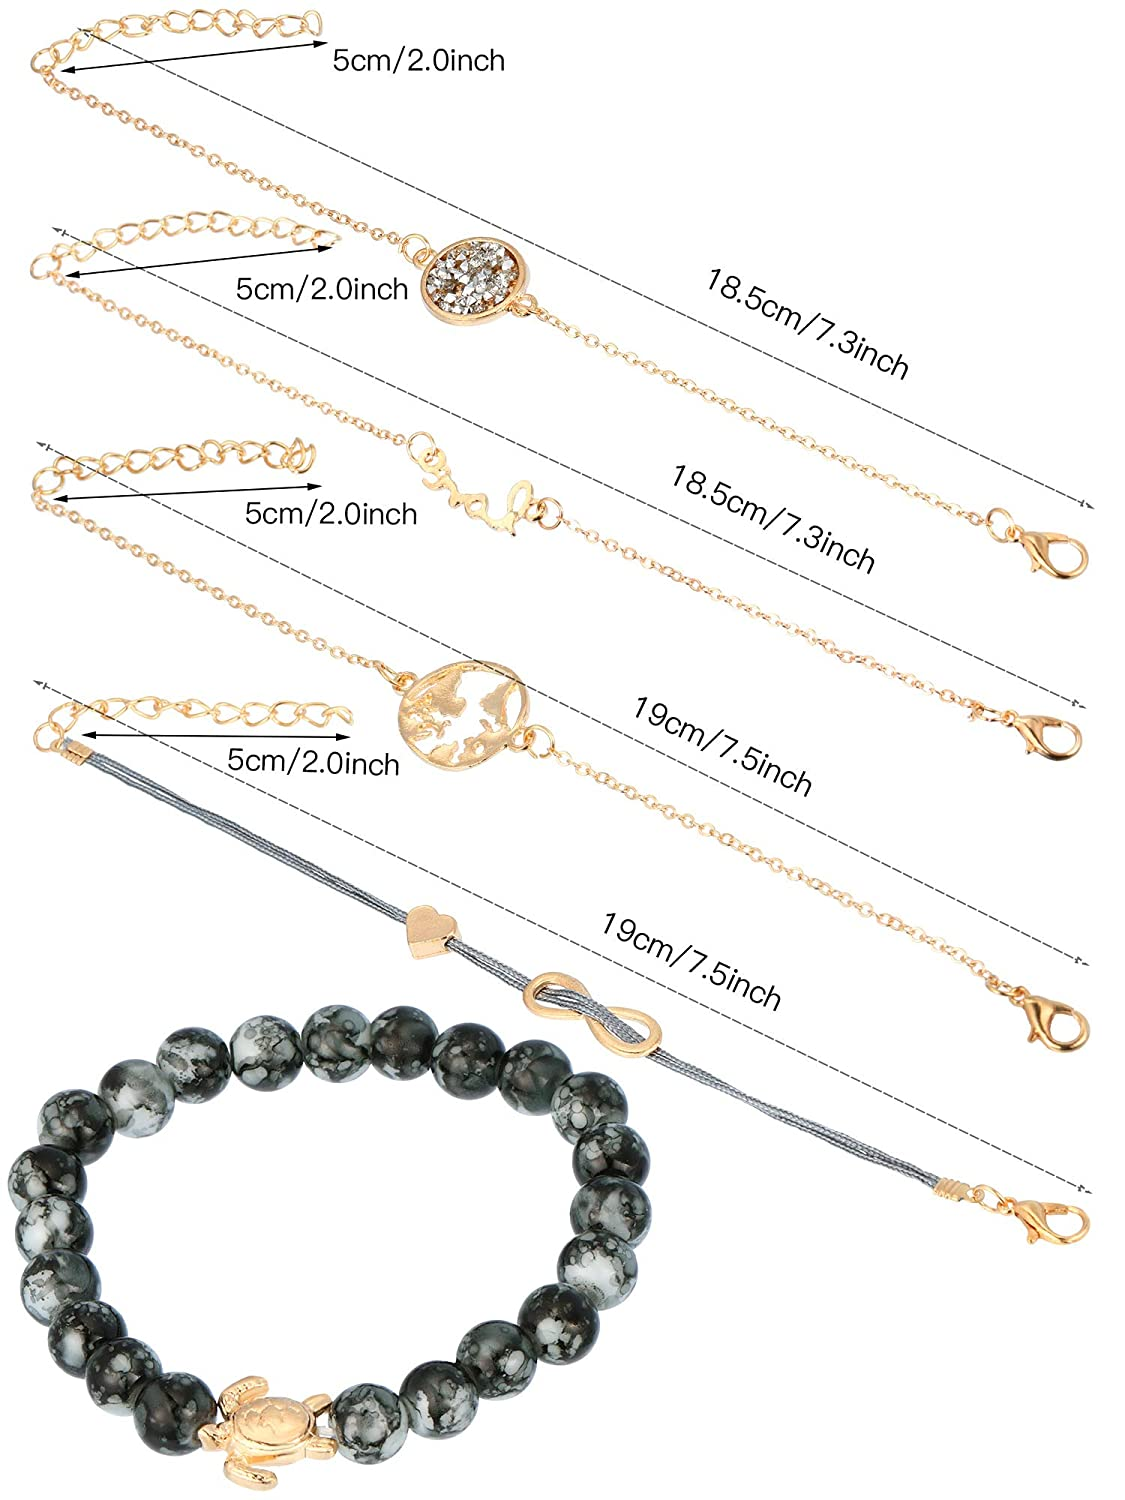 Skylety 5 Pieces Layered Bracelets Anklet Bracelet Stack Bracelets Pendent Boho Adjustable Bracelet for Women and Girls